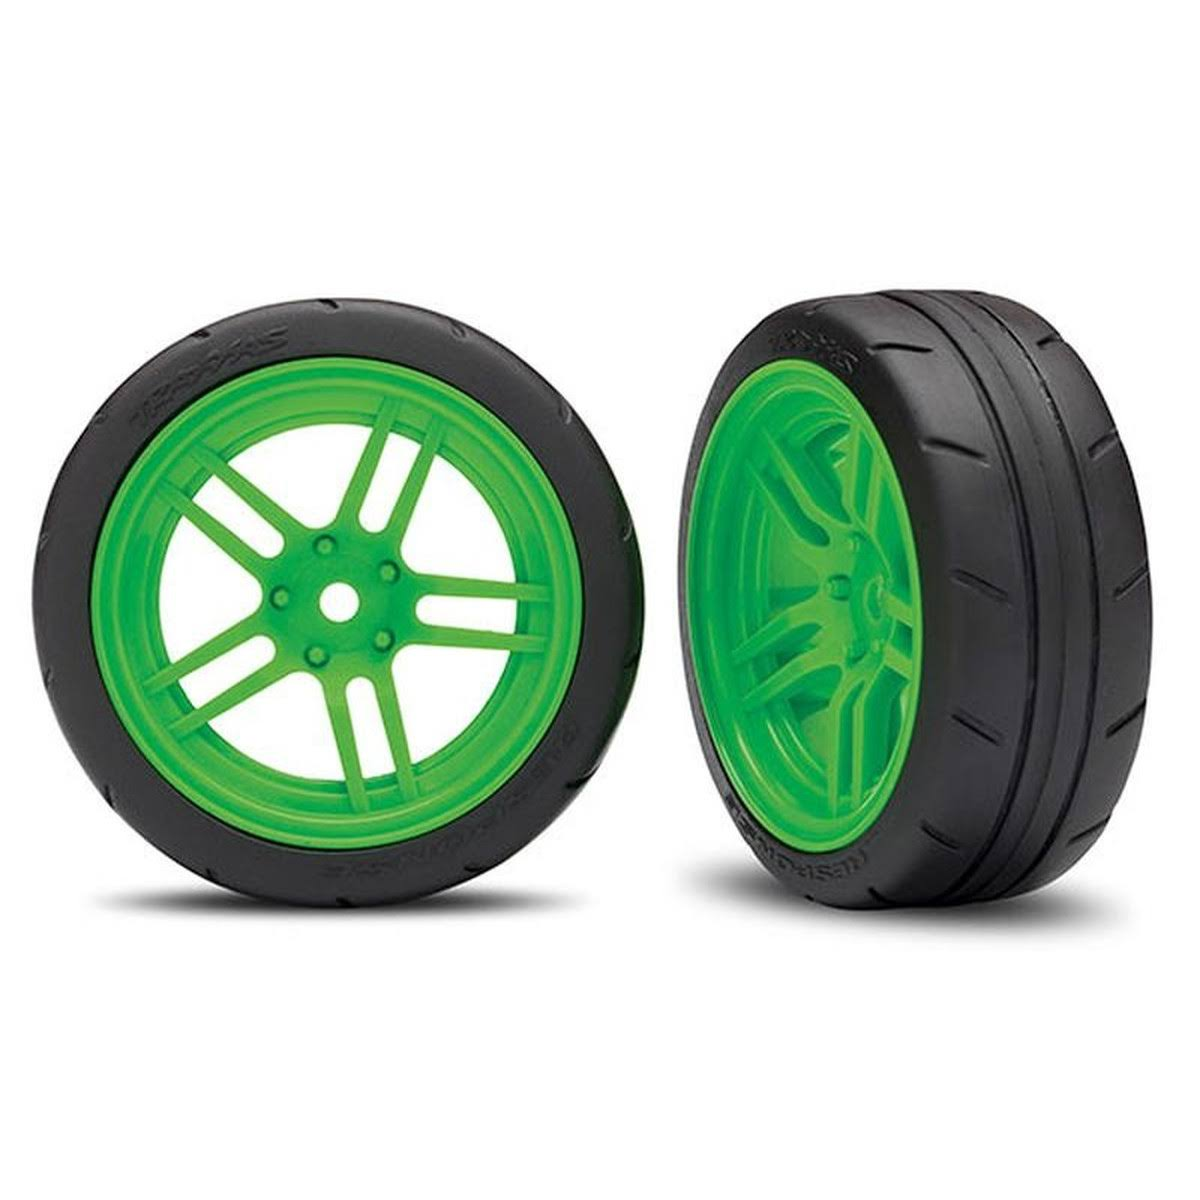 "Traxxas 8373G Assembled Green Split-Spoke Wheels with 1.9"" Response Tires"